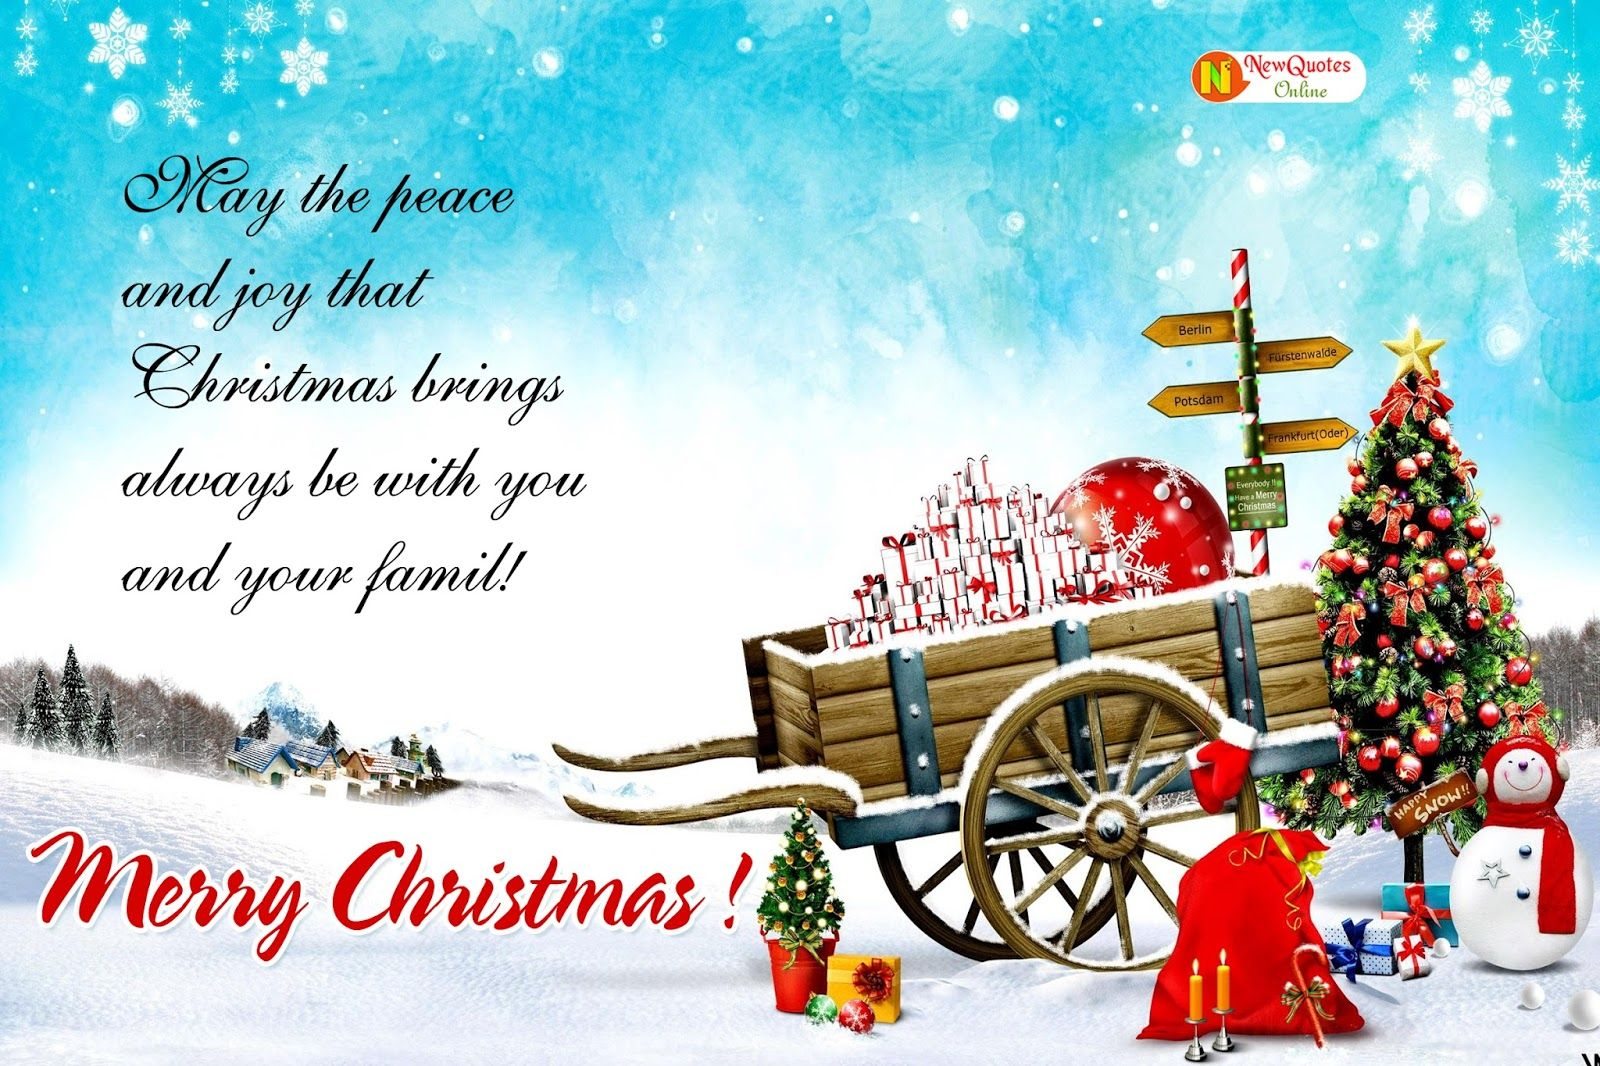 Nice christmas telugu quotes messages telugu christmas greetings nice christmas telugu quotes messages telugu christmas greetings telugu christmas quotes wallpapers telugu kristyandbryce Image collections